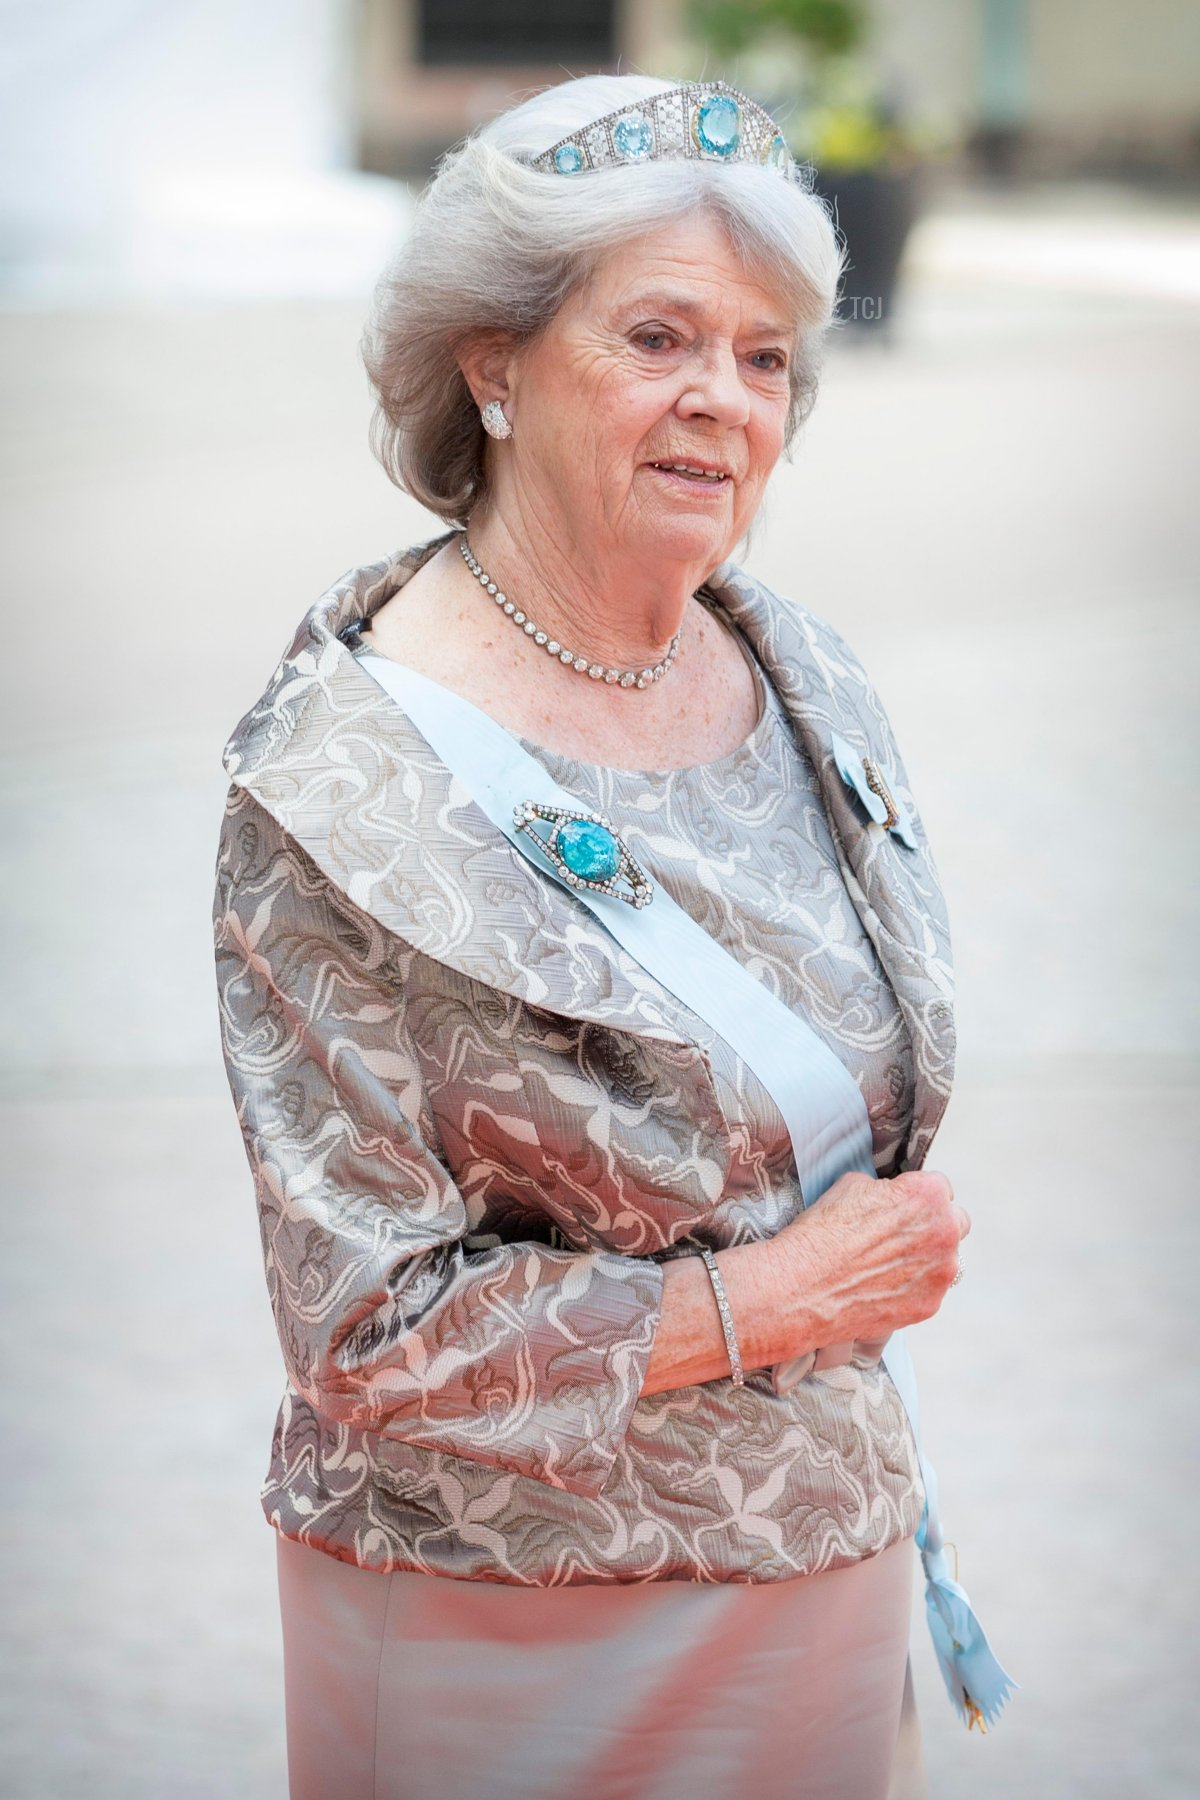 Princess Margaretha Mrs. Ambler attends the royal wedding of Prince Carl Philip of Sweden and Sofia Hellqvist at The Royal Palace on June 13, 2015 in Stockholm, Sweden